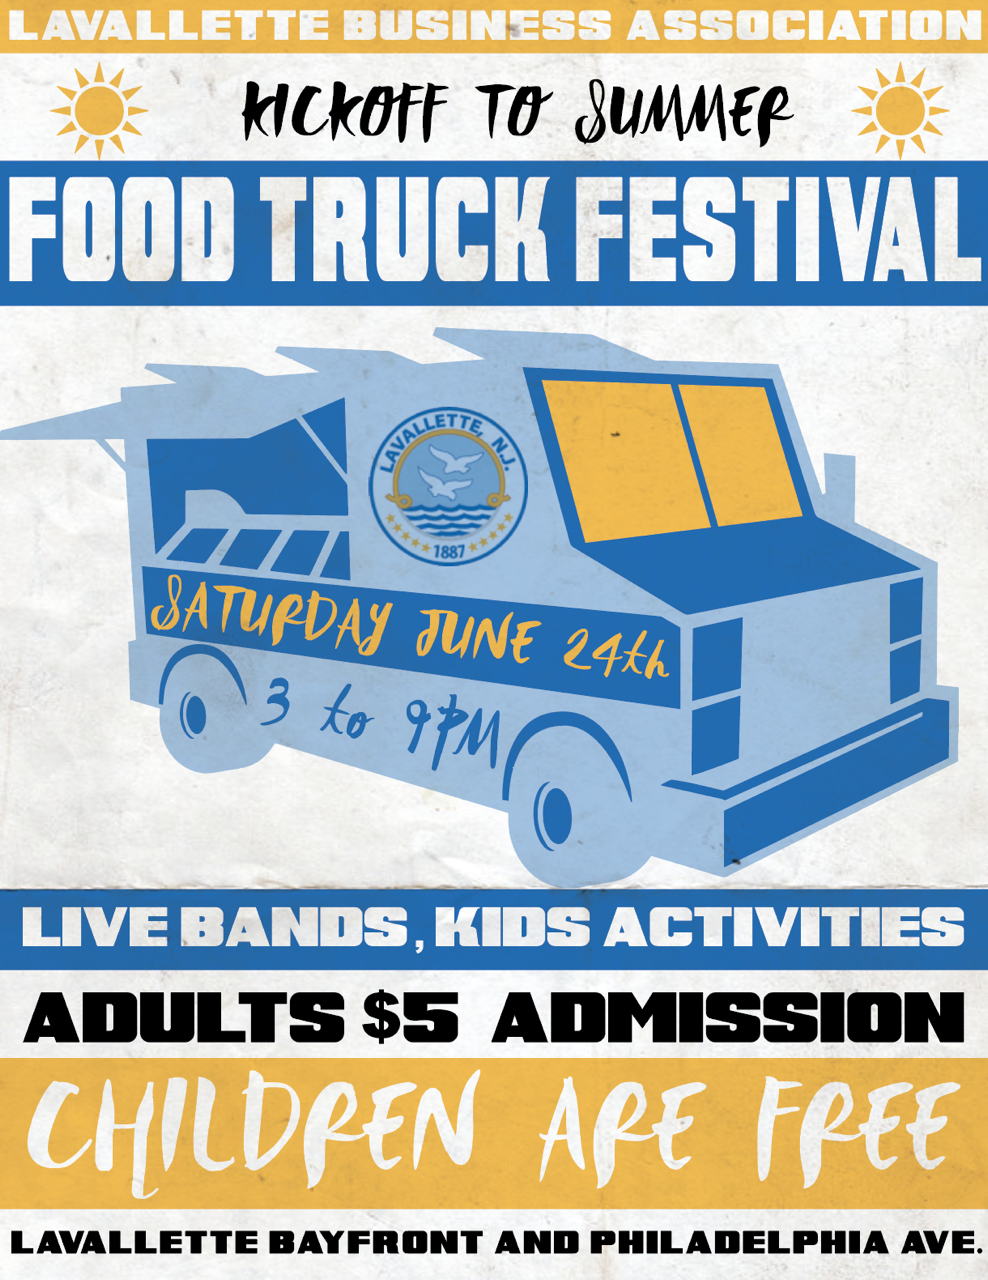 Kickoff to Summer Food Truck Festival